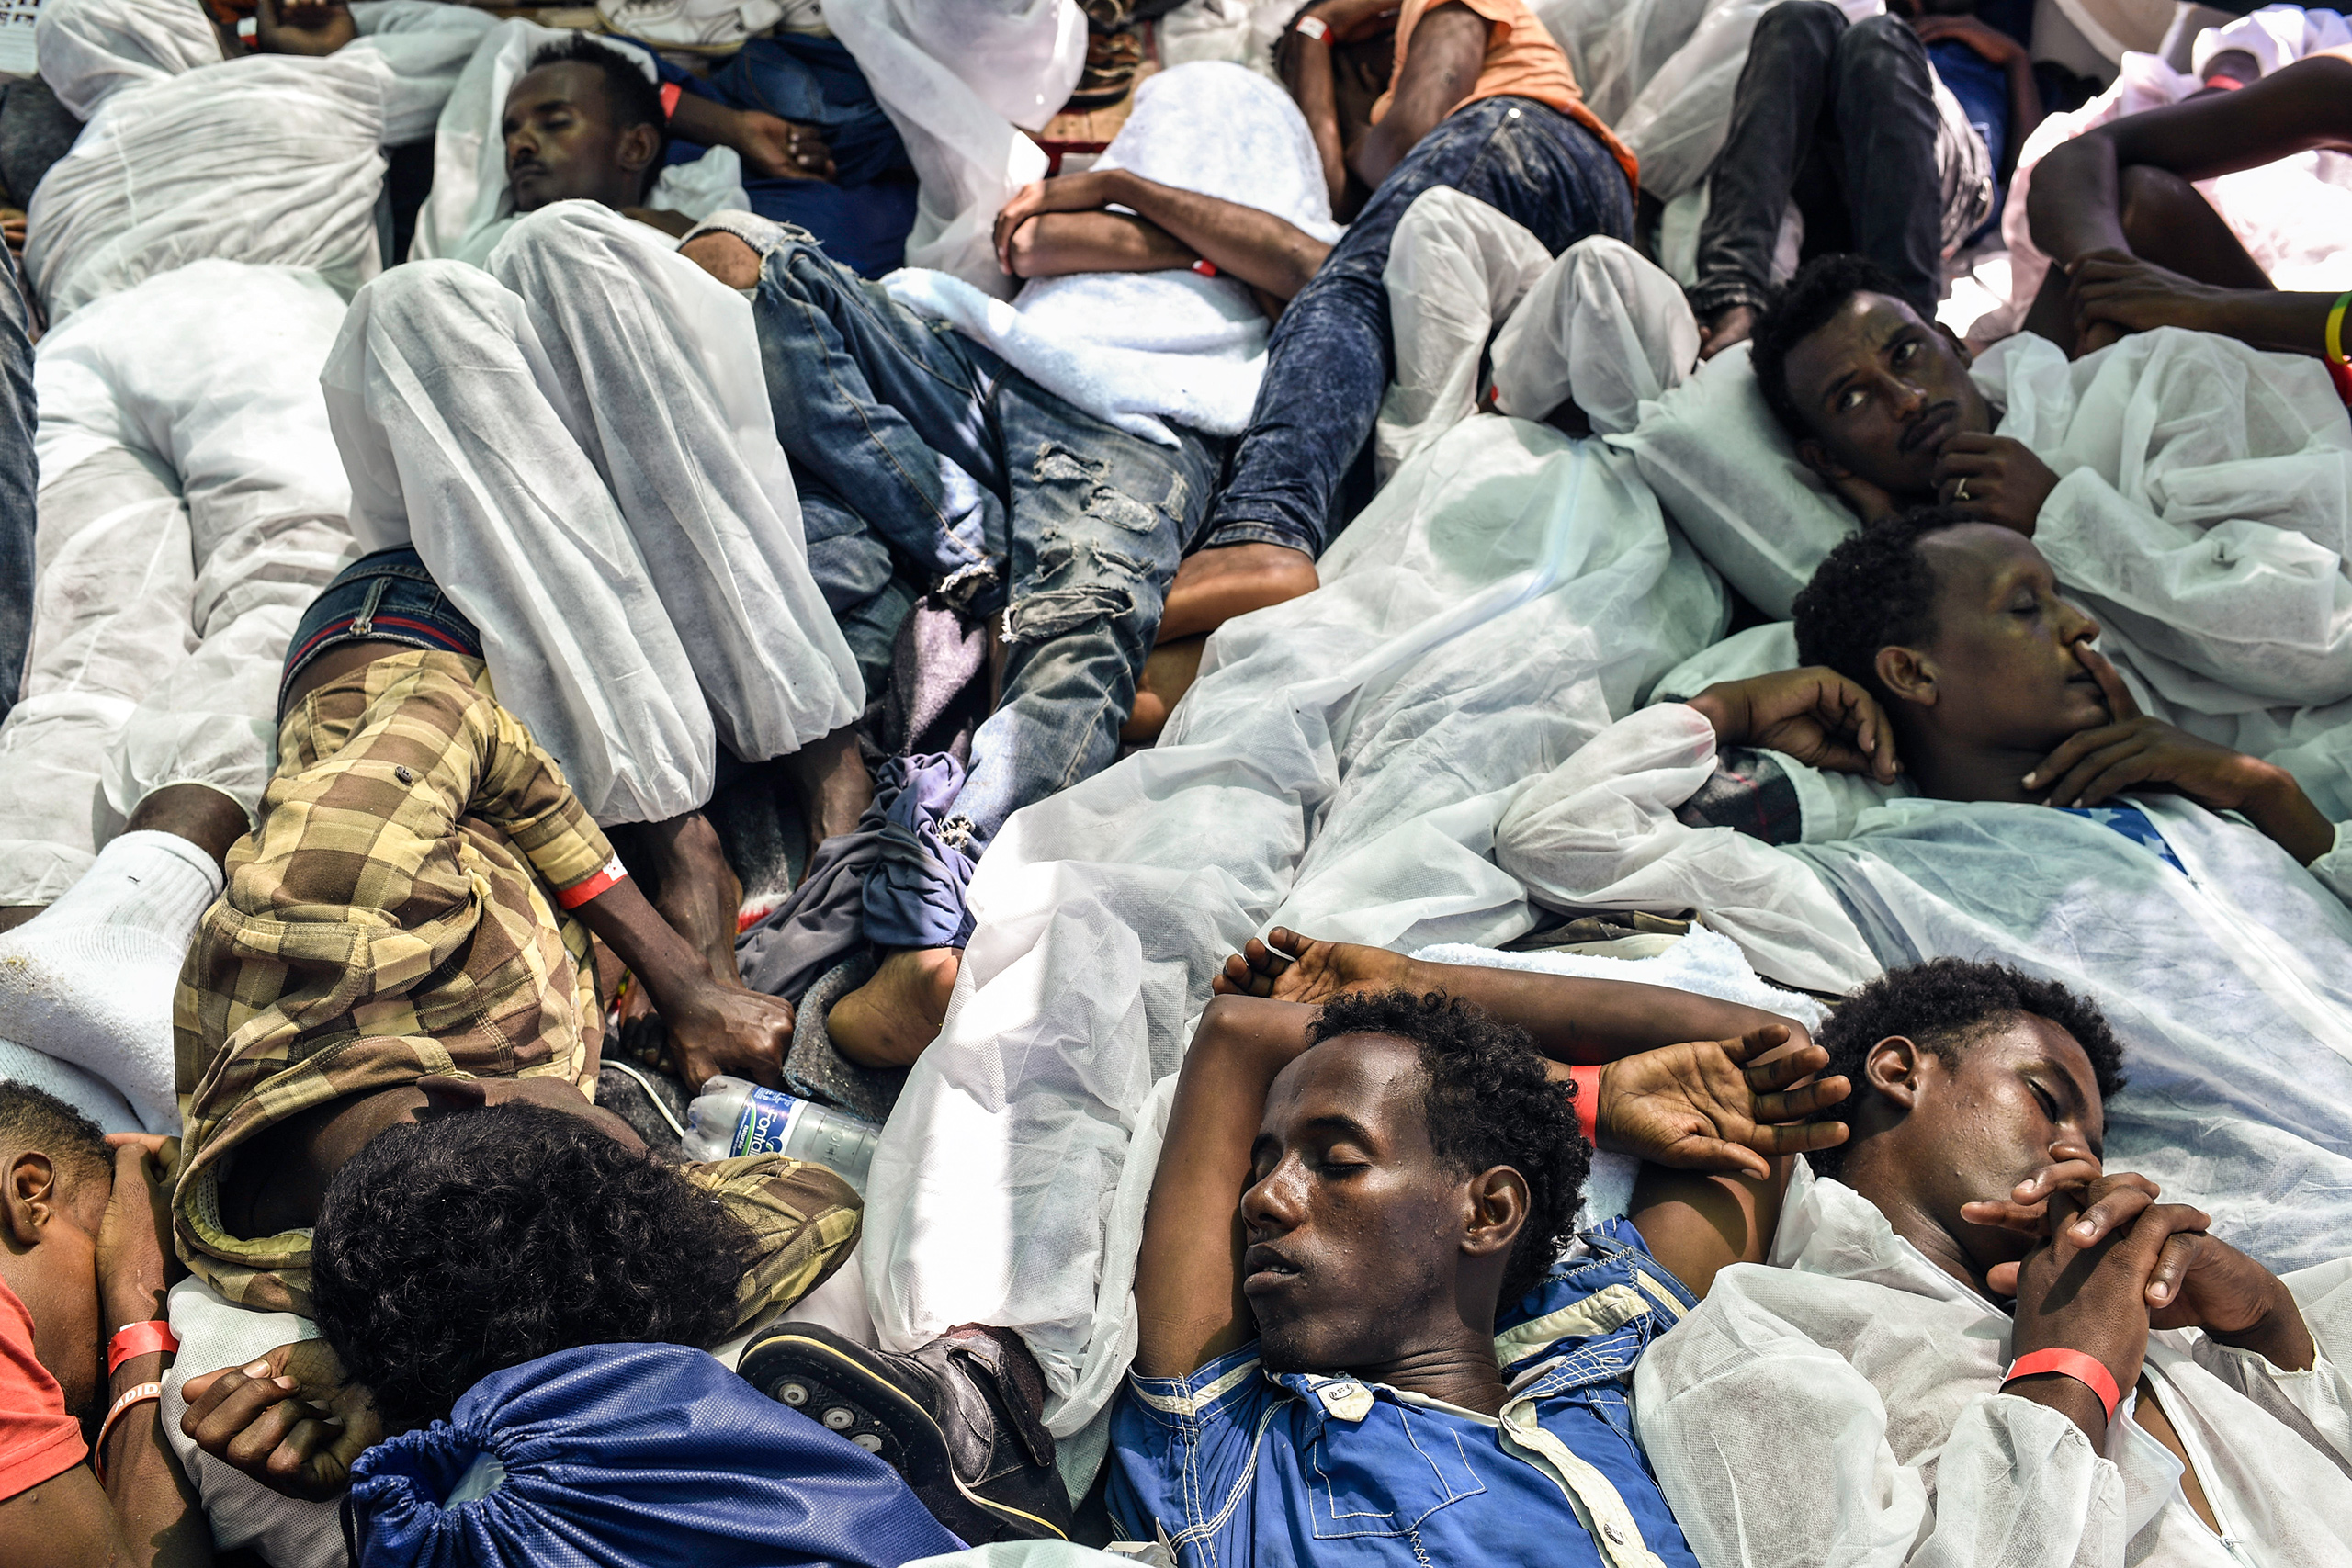 A group of men sleep on MV Aquarius ship after being rescued by search-and-rescue teams jointly operated by Médecins Sans Frontières and SOS Méditerranée, Aug. 21, 2016.